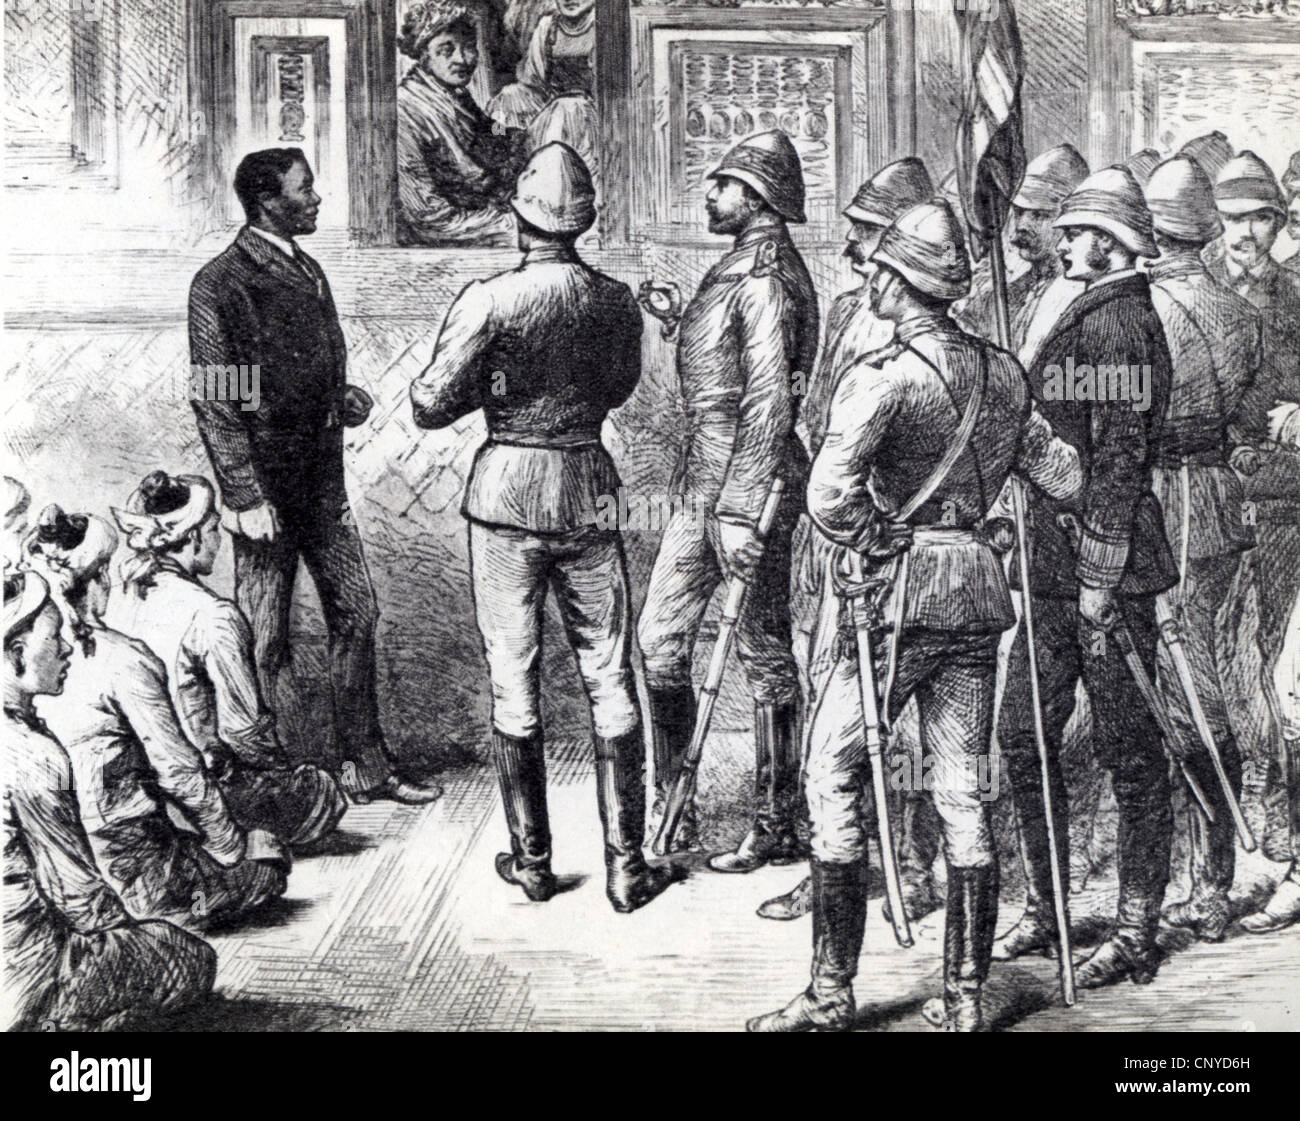 BURMA English officers with King Thebaw of Upper Burma at window when Britain annexed his territory  in 1885. Translator - Stock Image